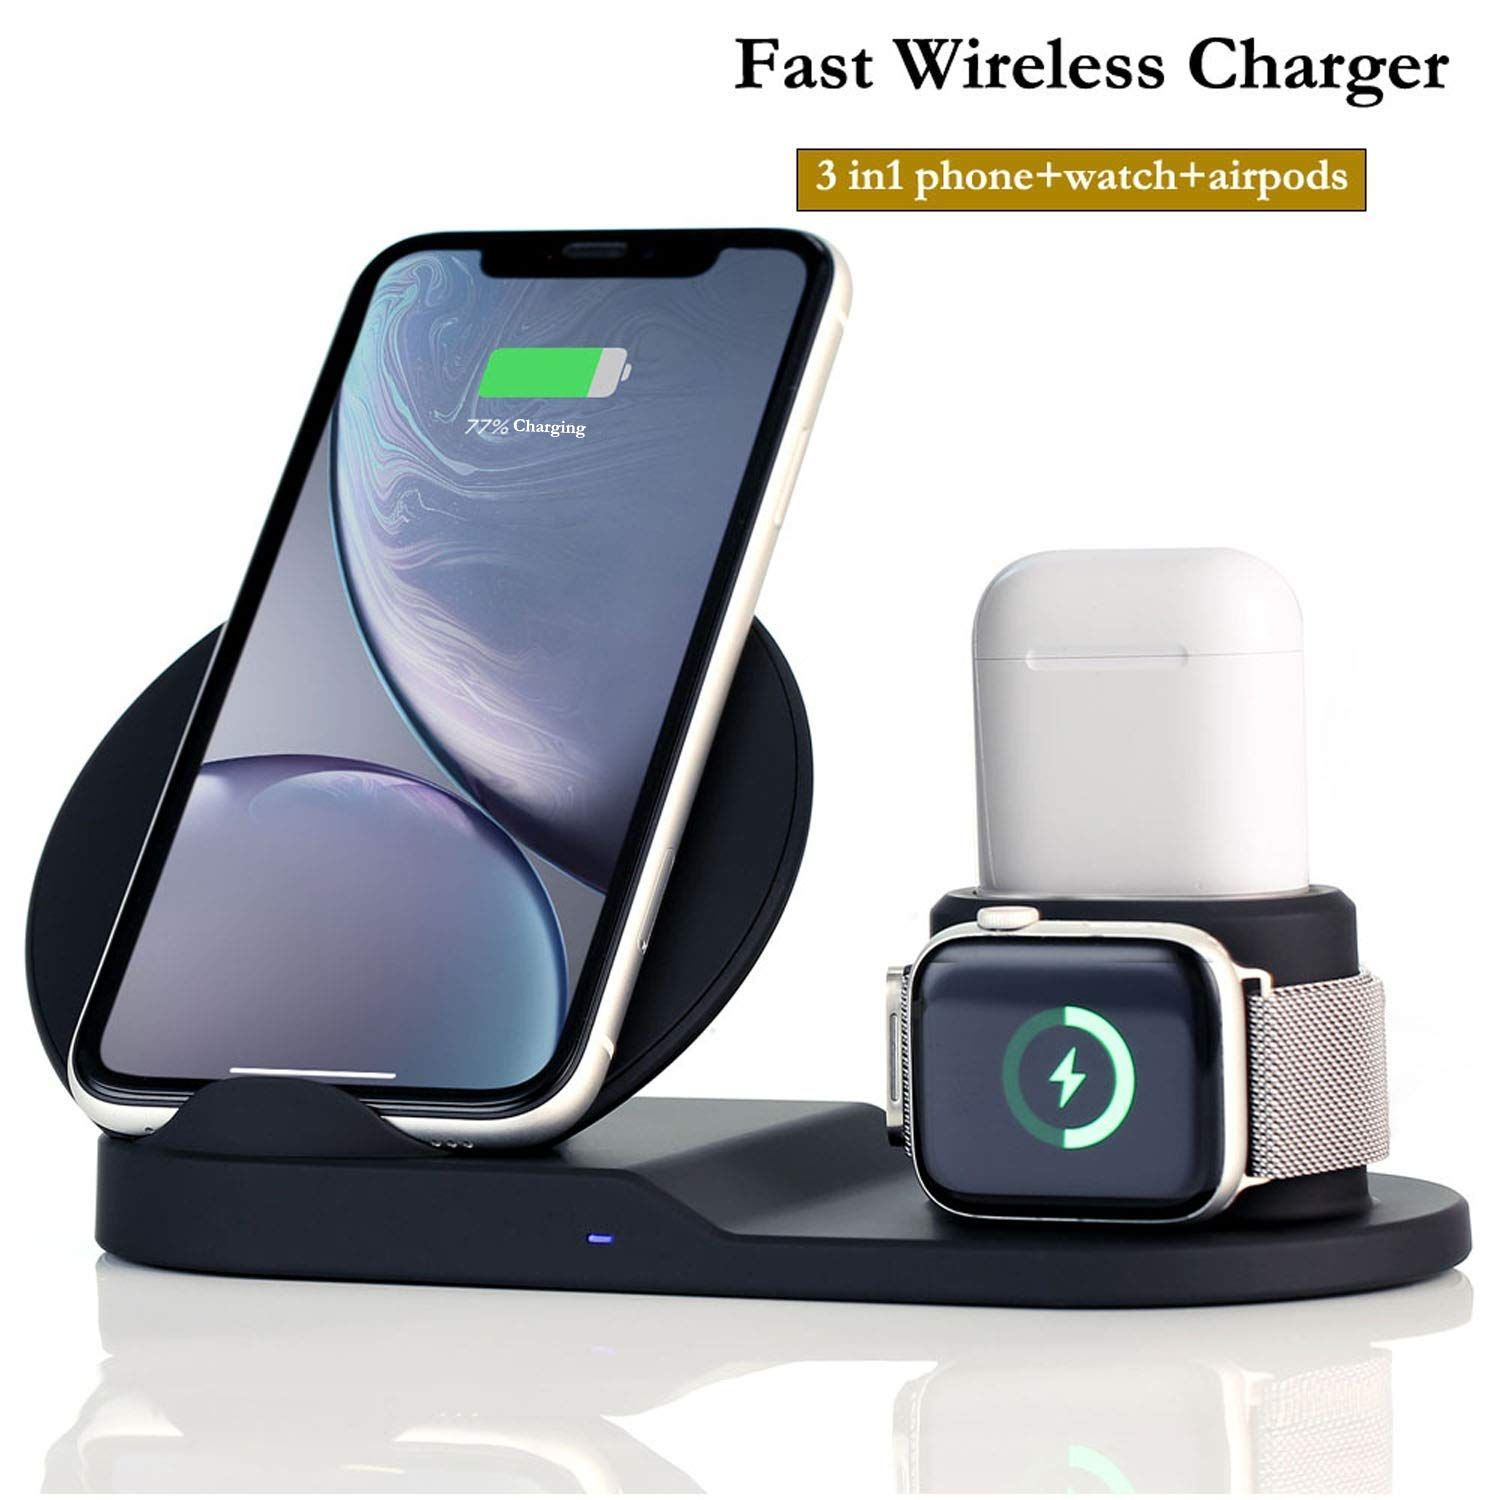 Wireless Charger Station 3 In 1 Charging Stand For Apple Watch Dock For Airpods Qi Certifie